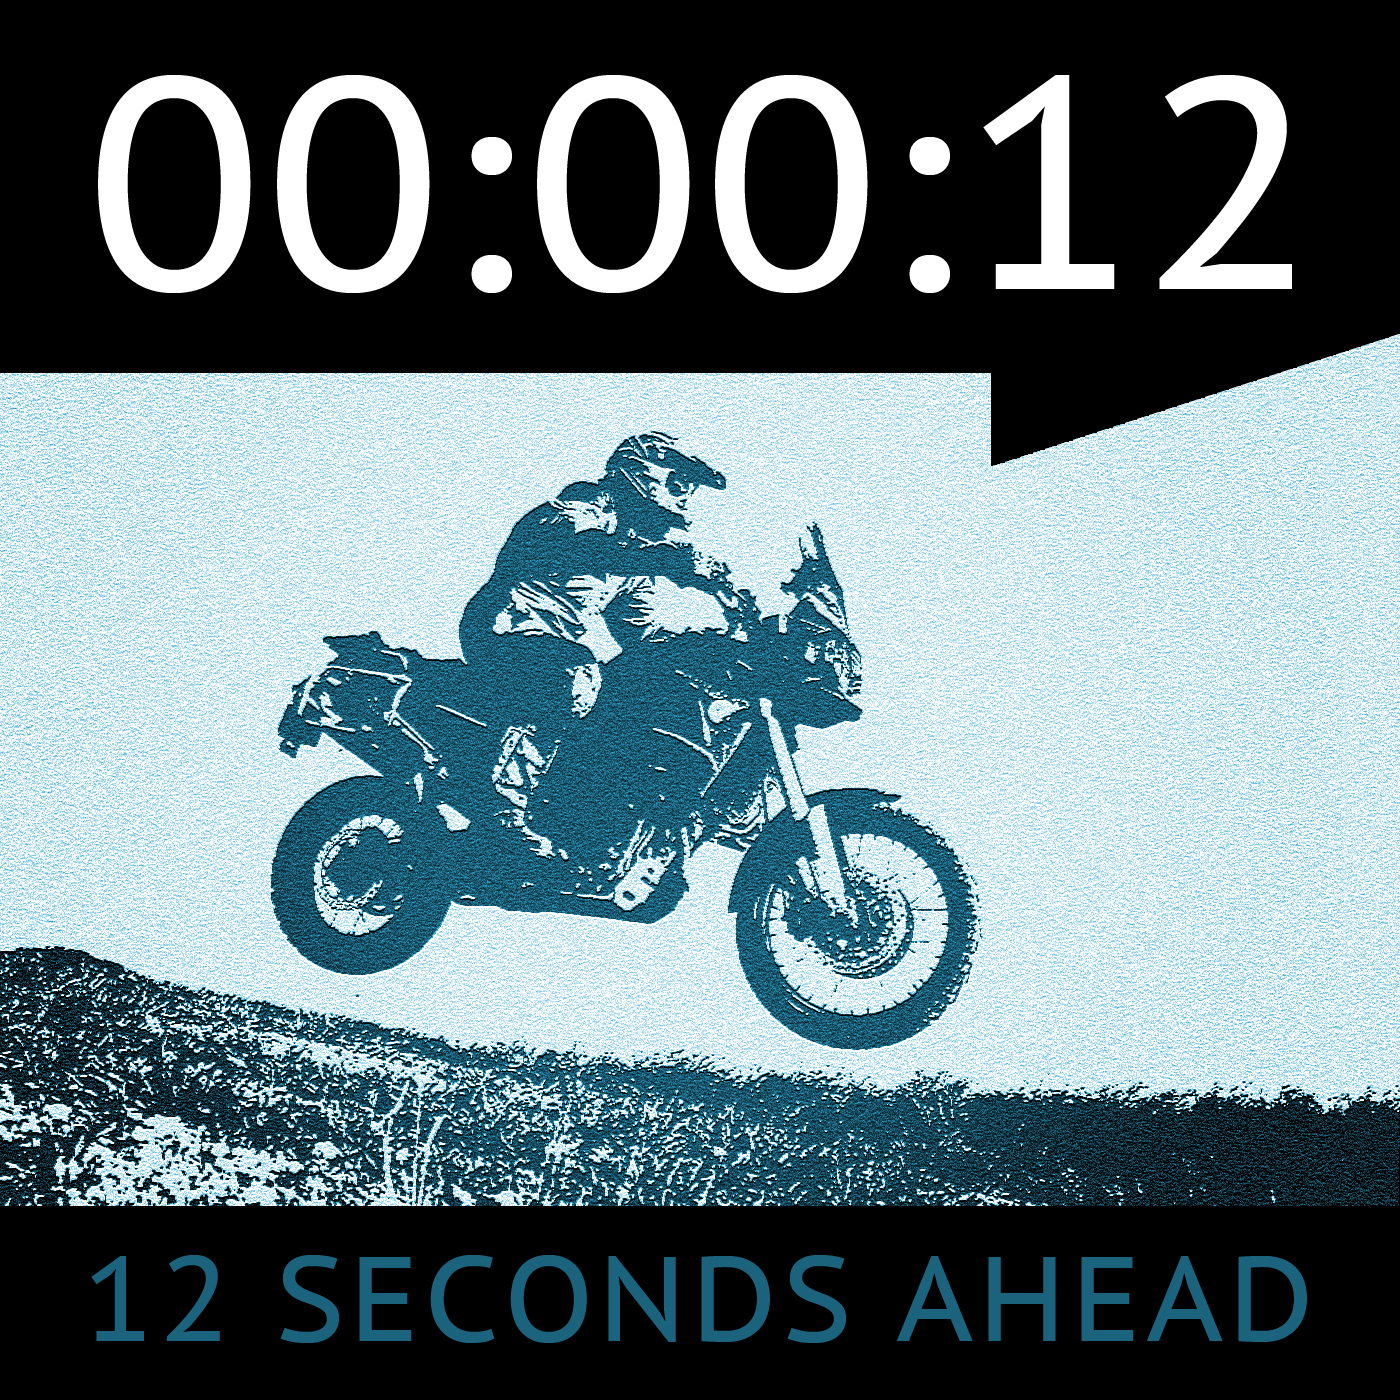 12 SECONDS AHEAD (blog) - KITUNDU